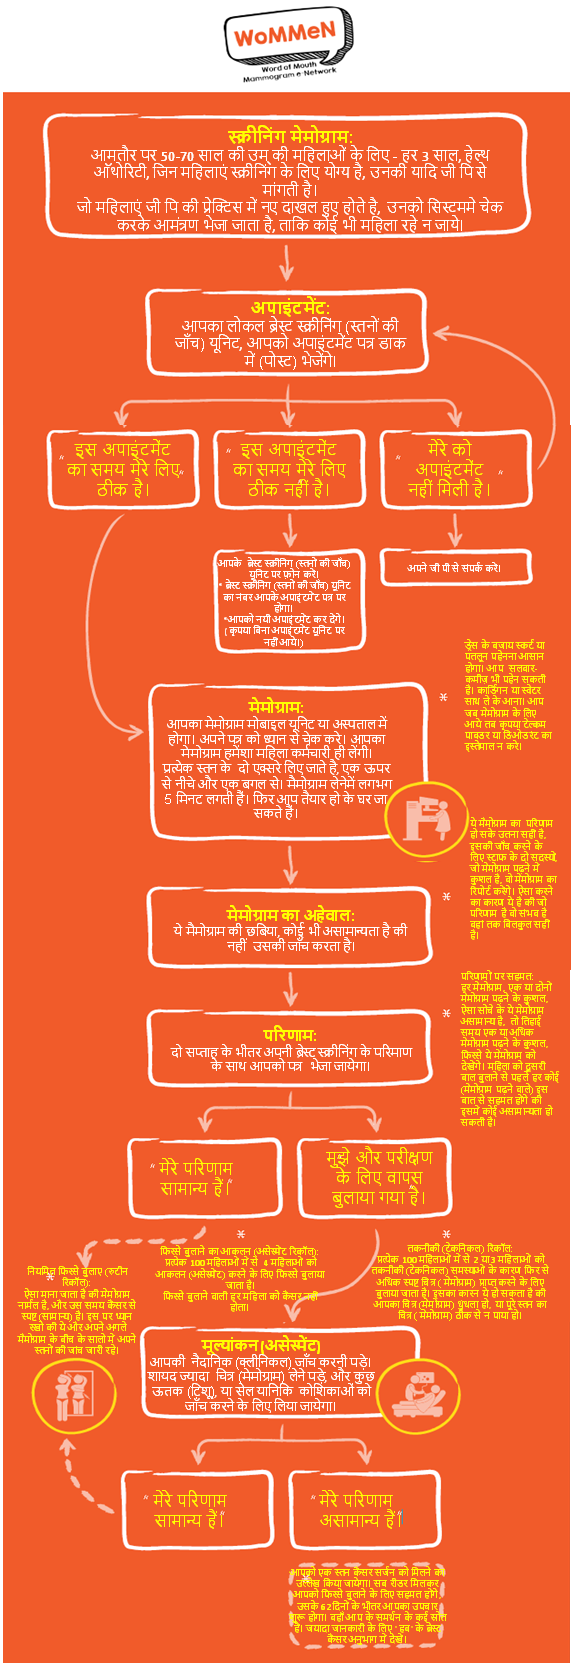 Hindi translation of our WoMMeN infographic